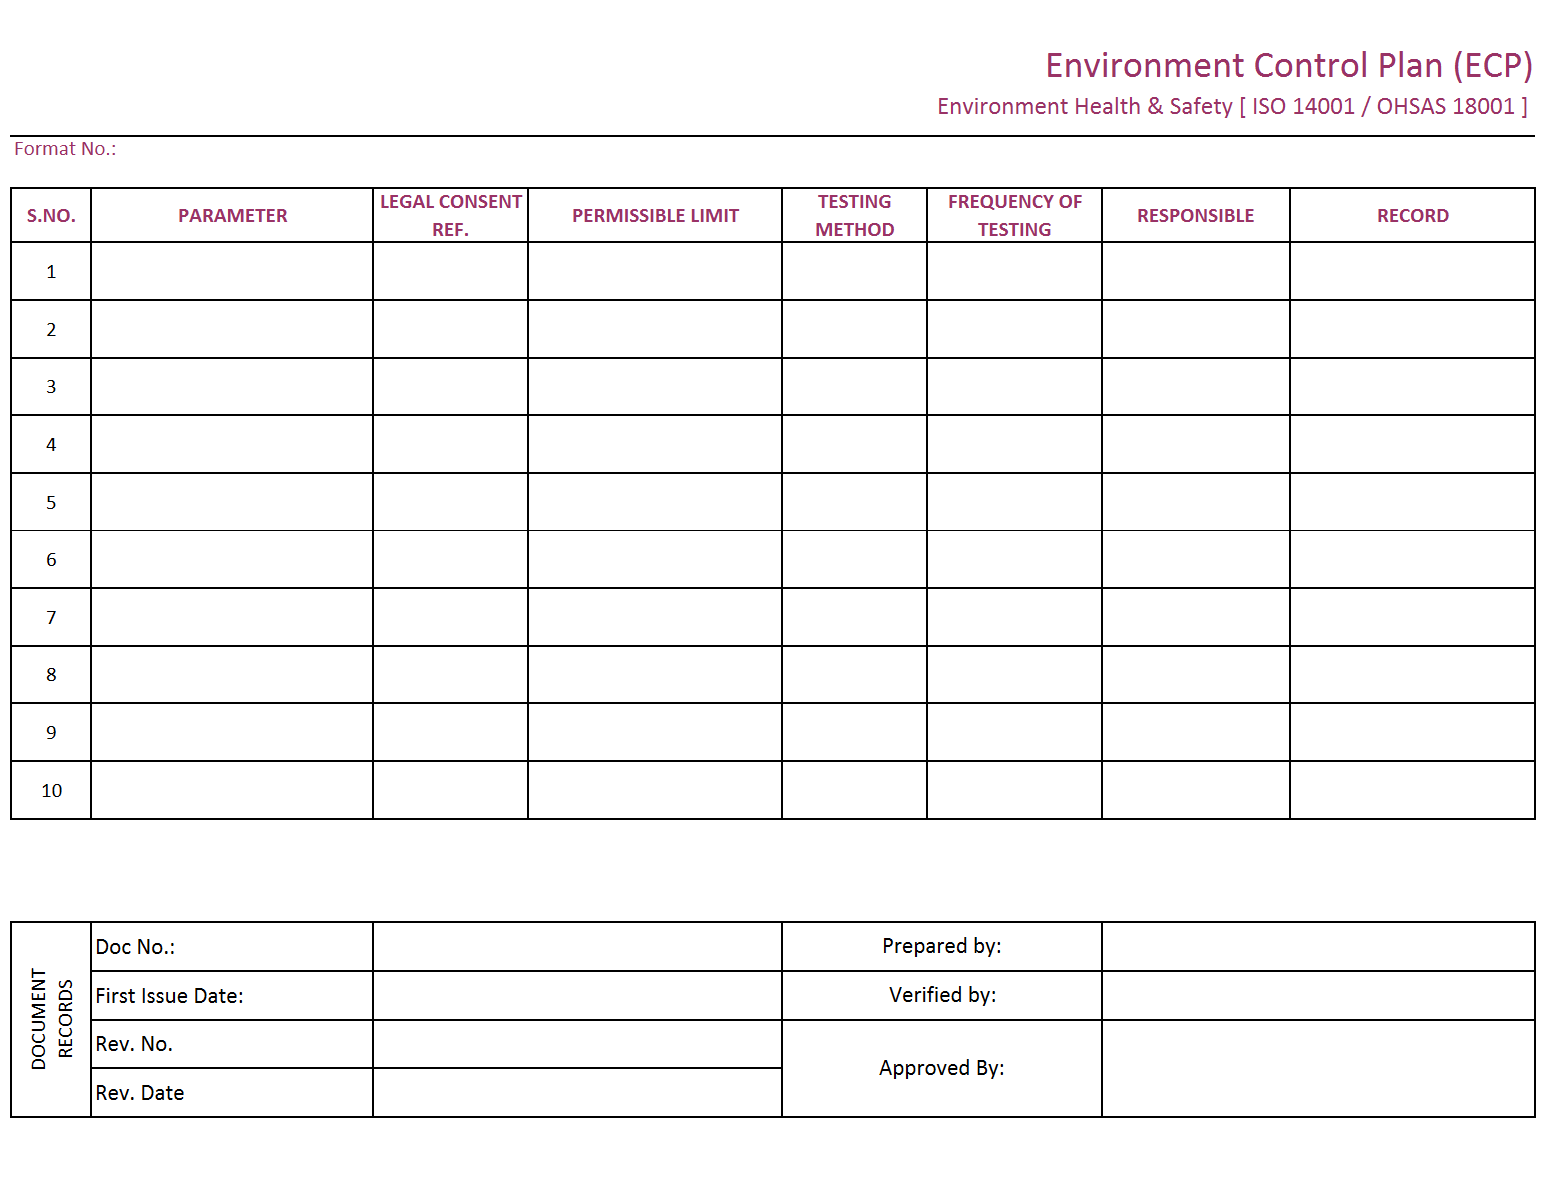 Aspect and impact register iso 14001 harutracker for Environmental aspects register template